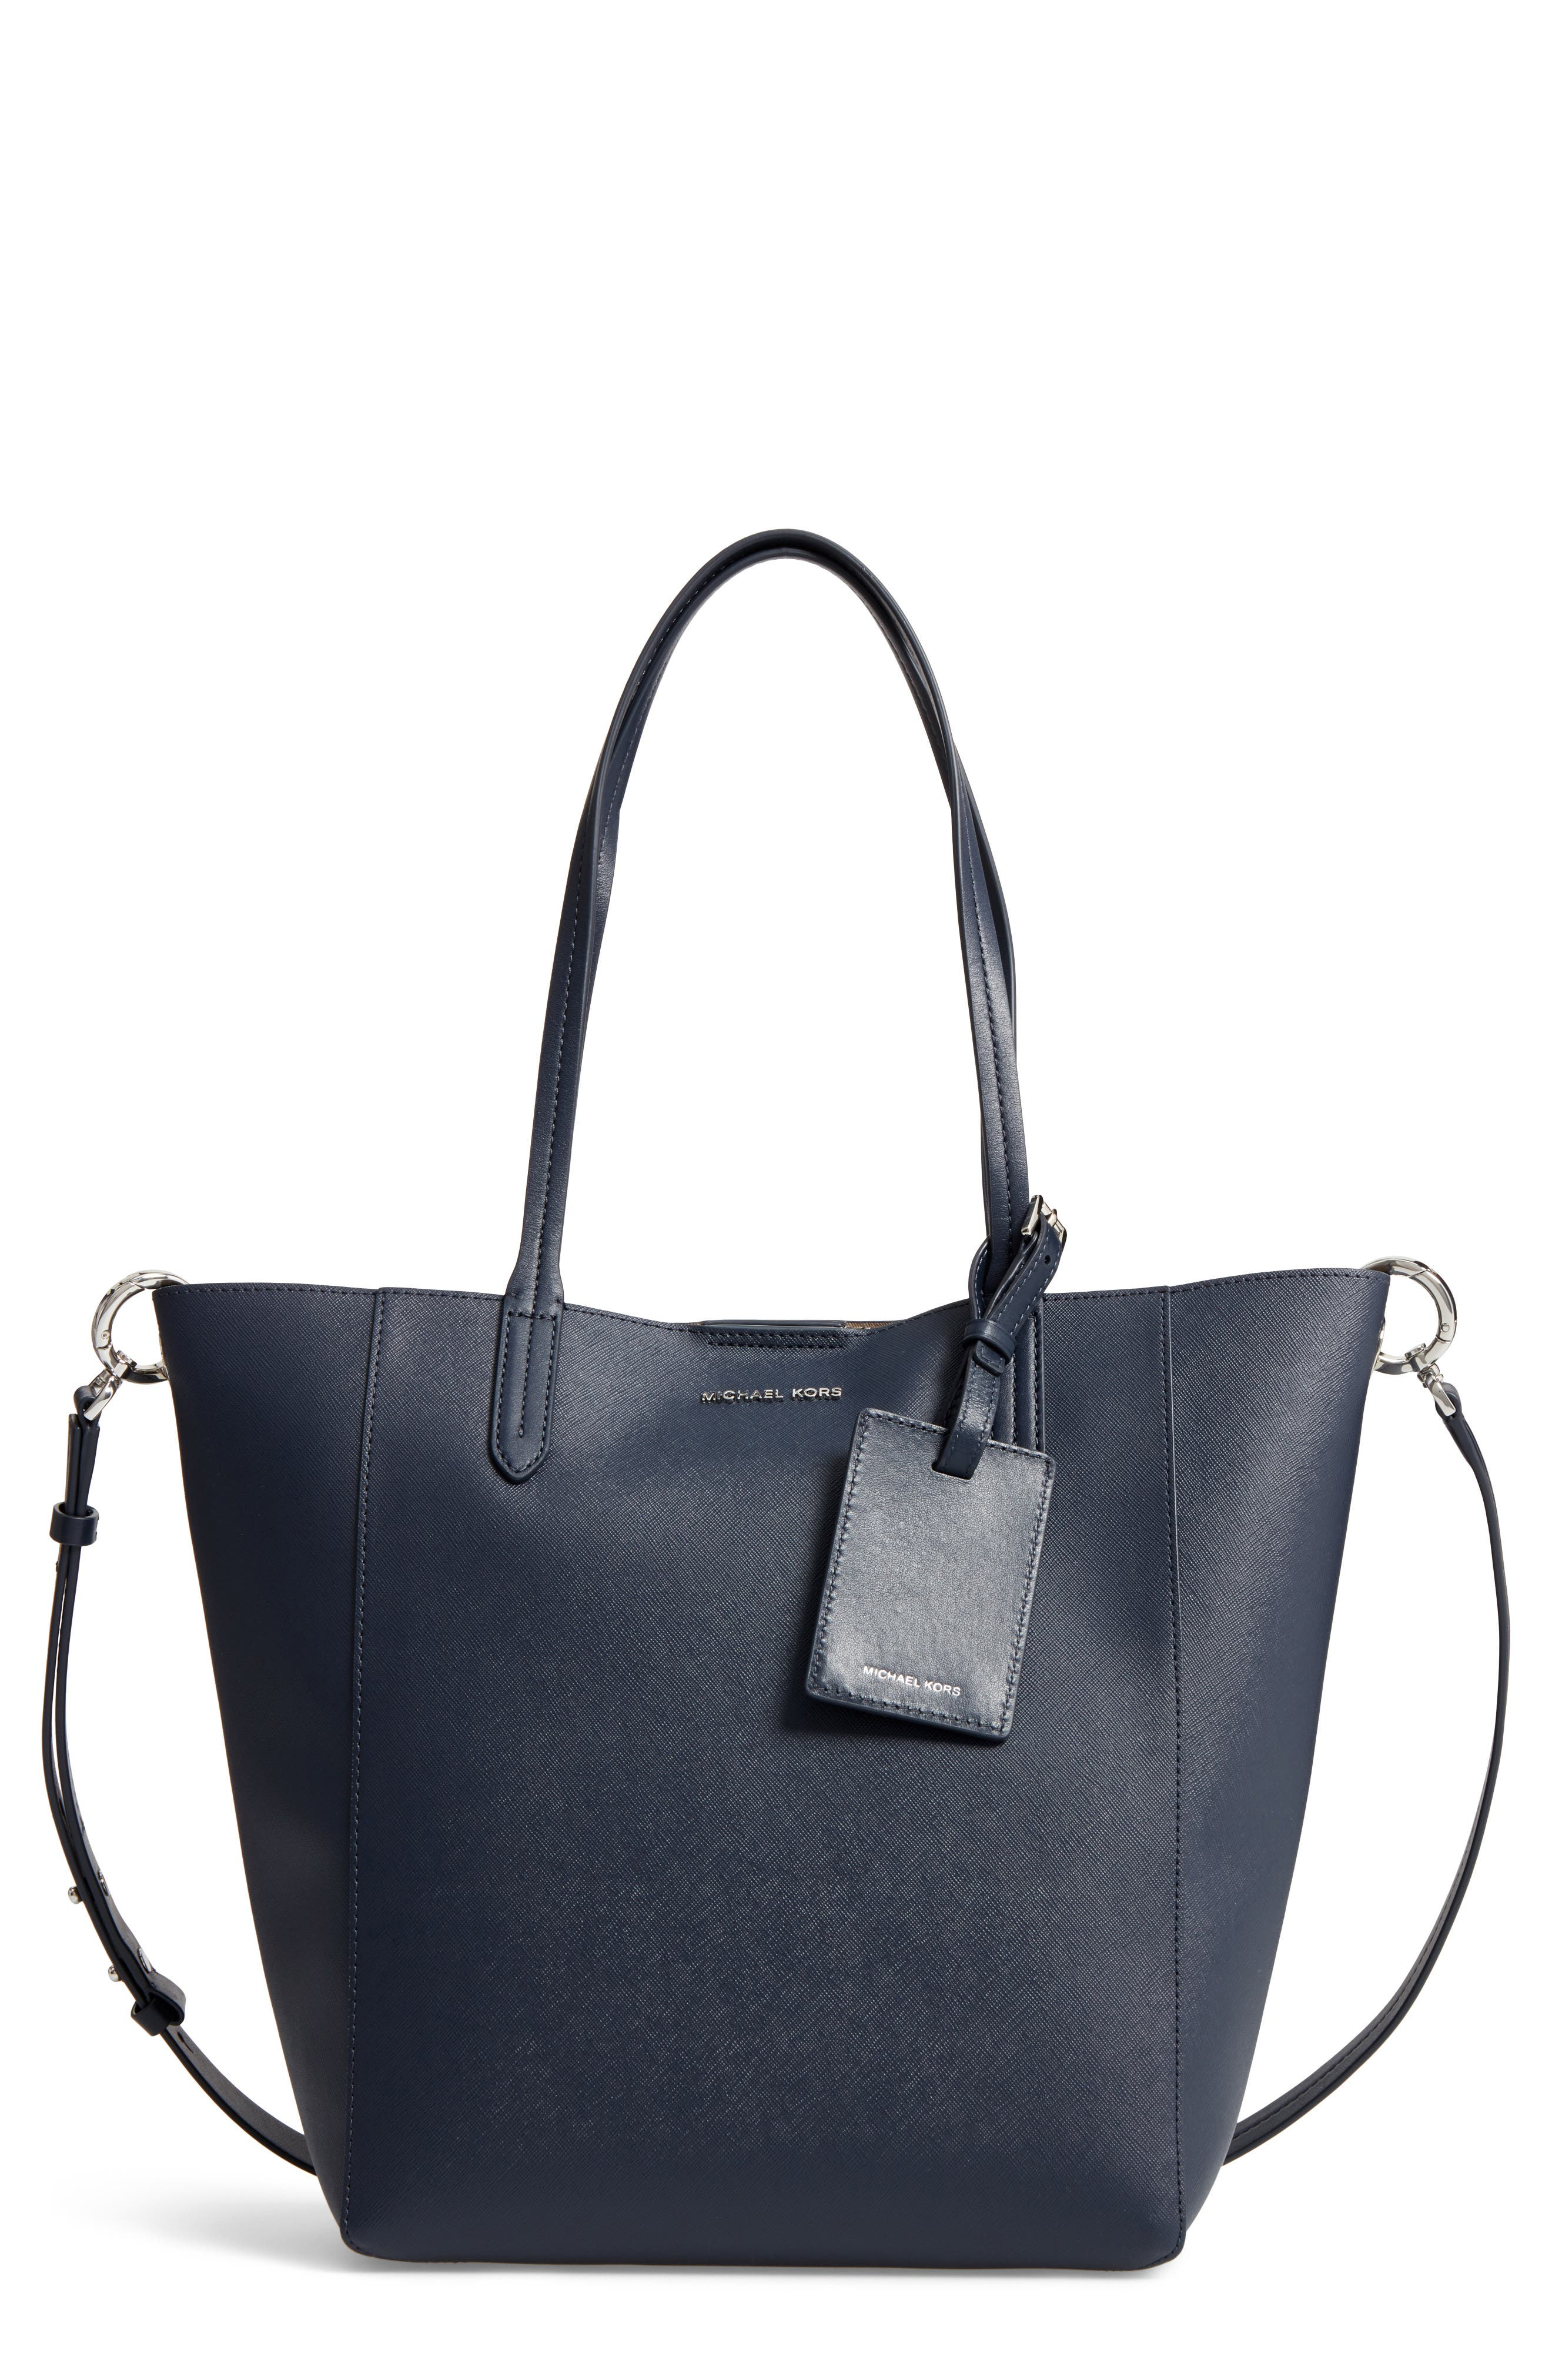 Penny Large Saffiano Convertible Leather Tote,                             Main thumbnail 1, color,                             414